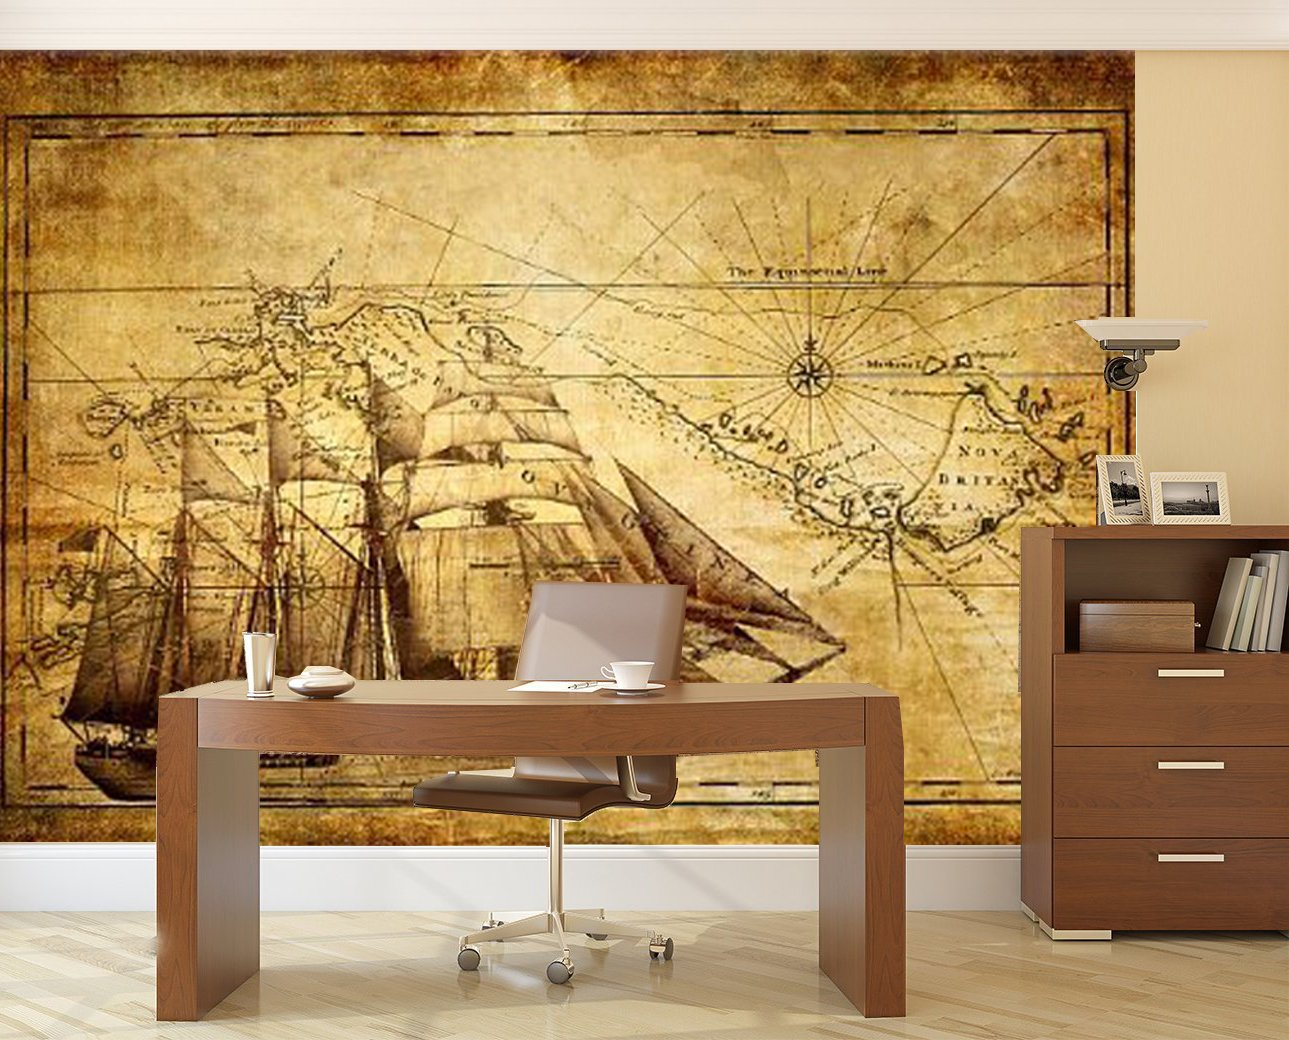 Startonight Mural Wall Art Photo Decor Old Map Large 8 Feet 4 Inch By  12 Feet Wall Mural For Living Room Or Bedroom     Amazon.com